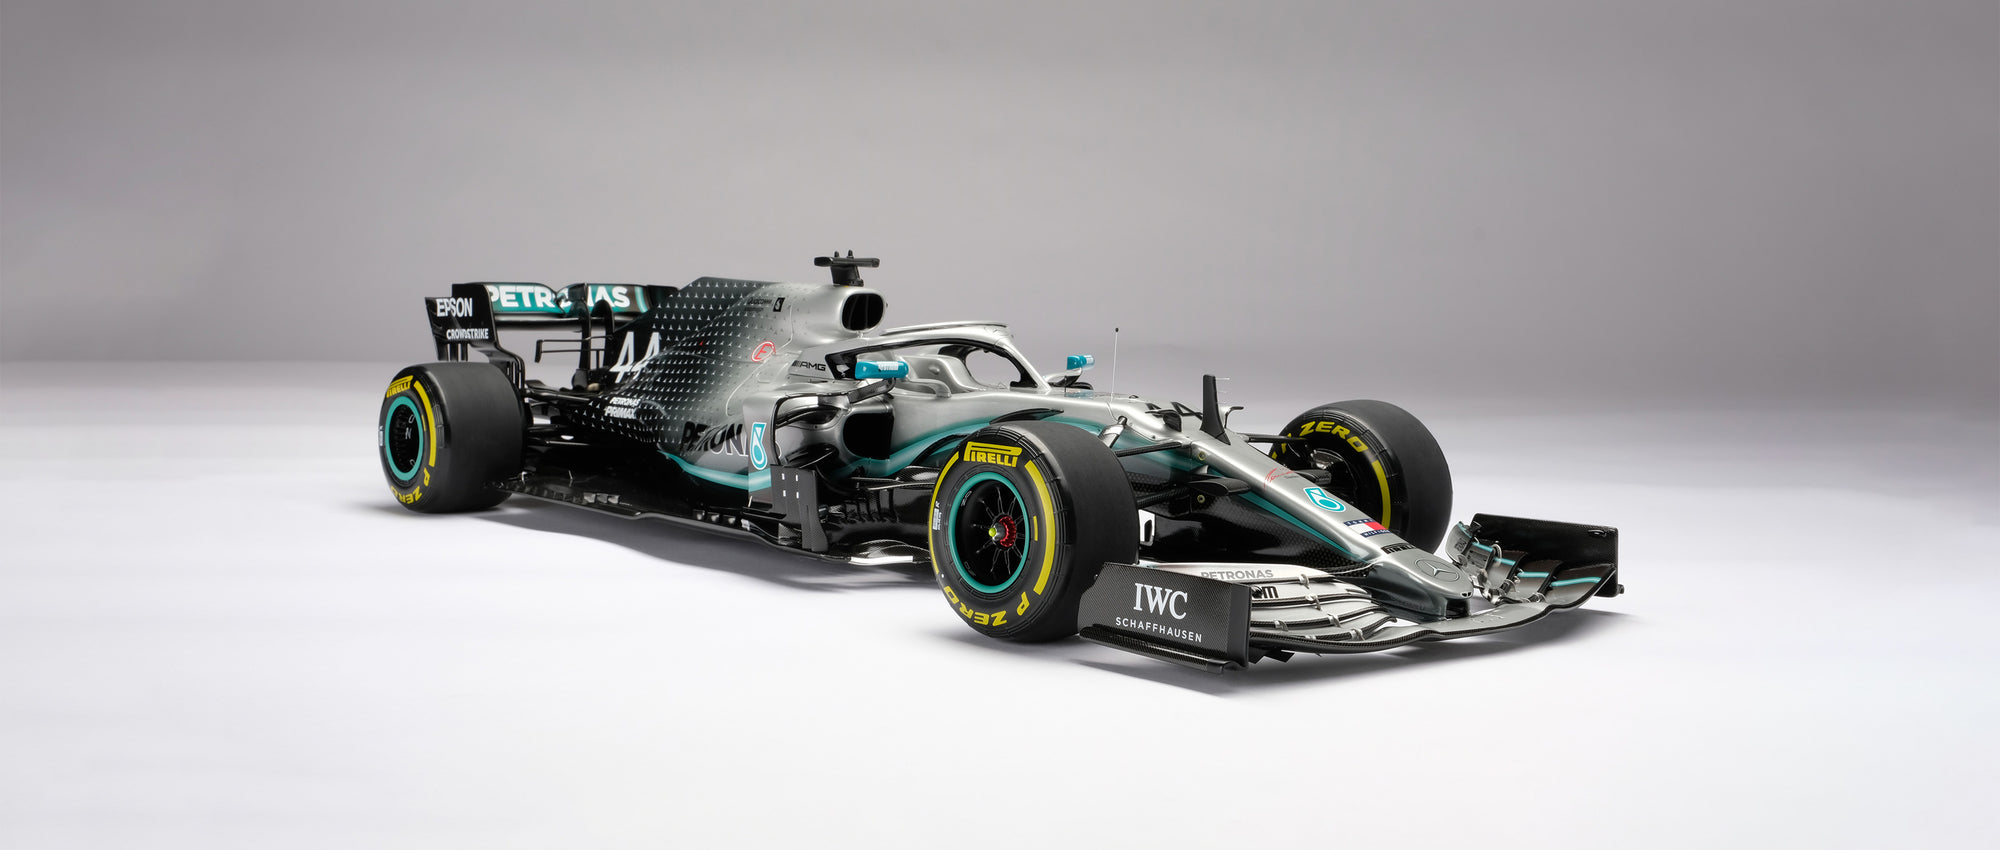 Mercedes-AMG F1 W10 EQ Power+ - Hamilton